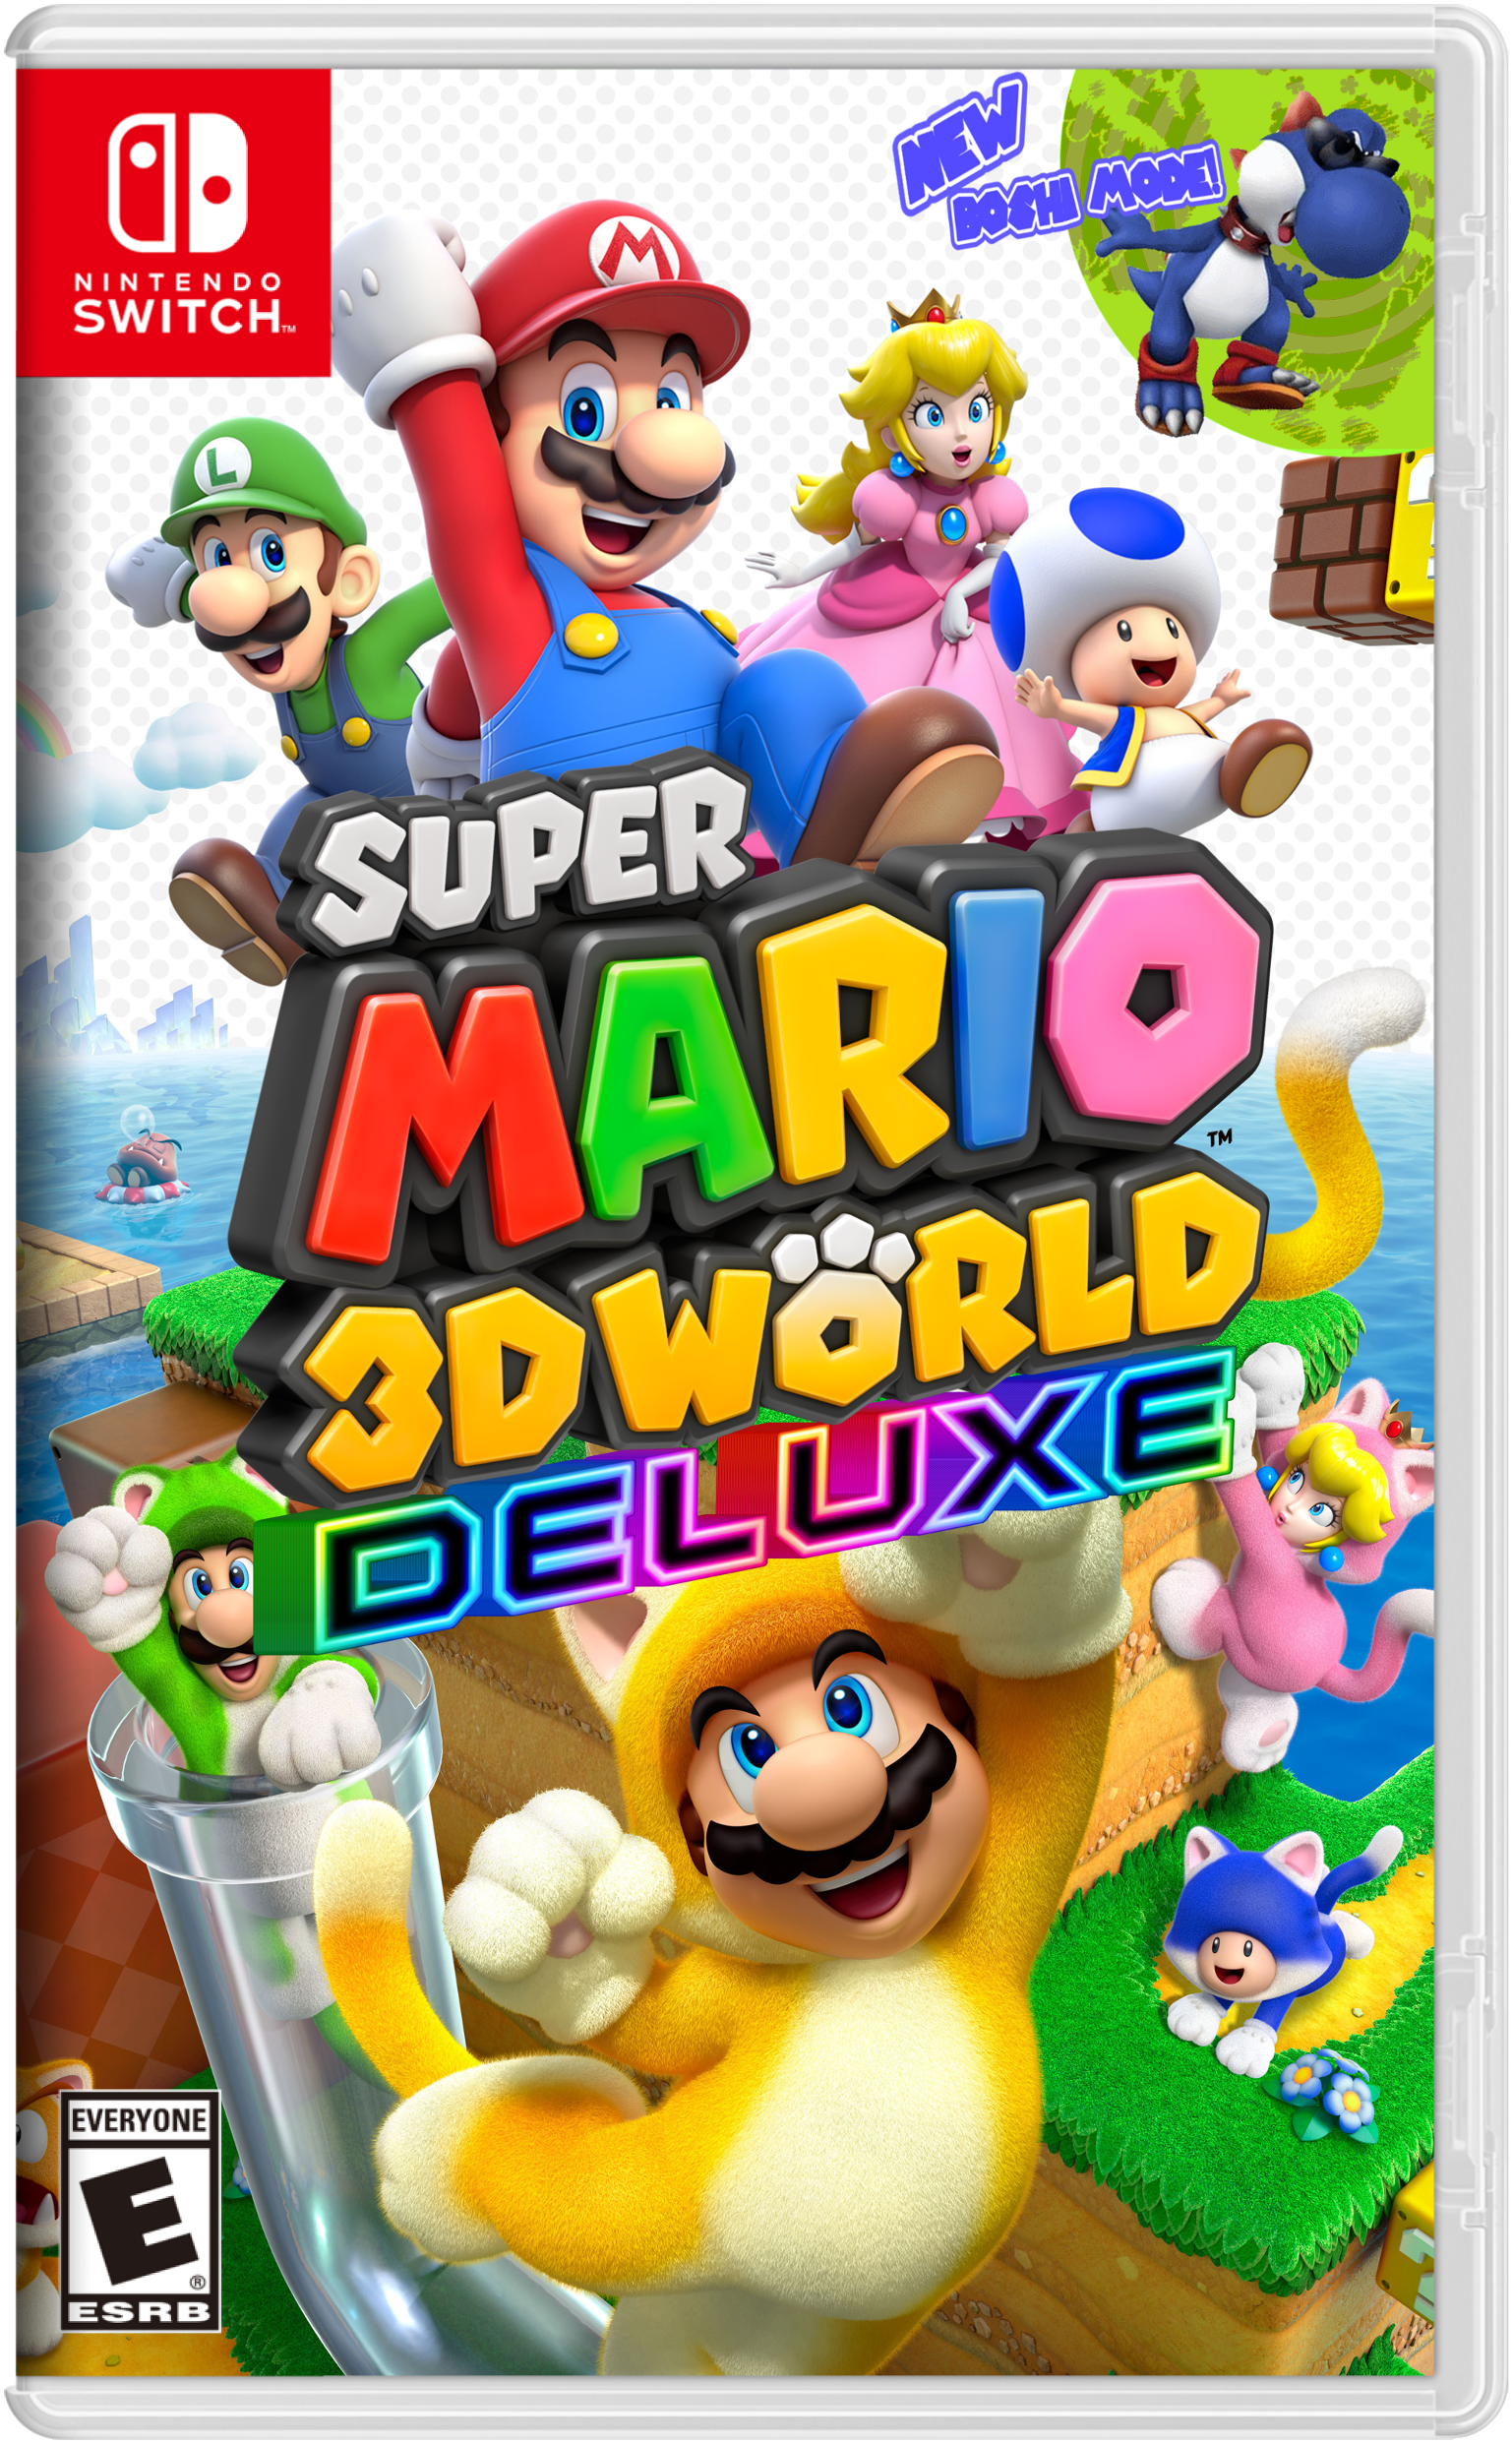 Super Mario 3d World Deluxe For Nintendo Switch Nintendo Switch Super Mario 3d Nintendo Switch Super Mario Super Mario